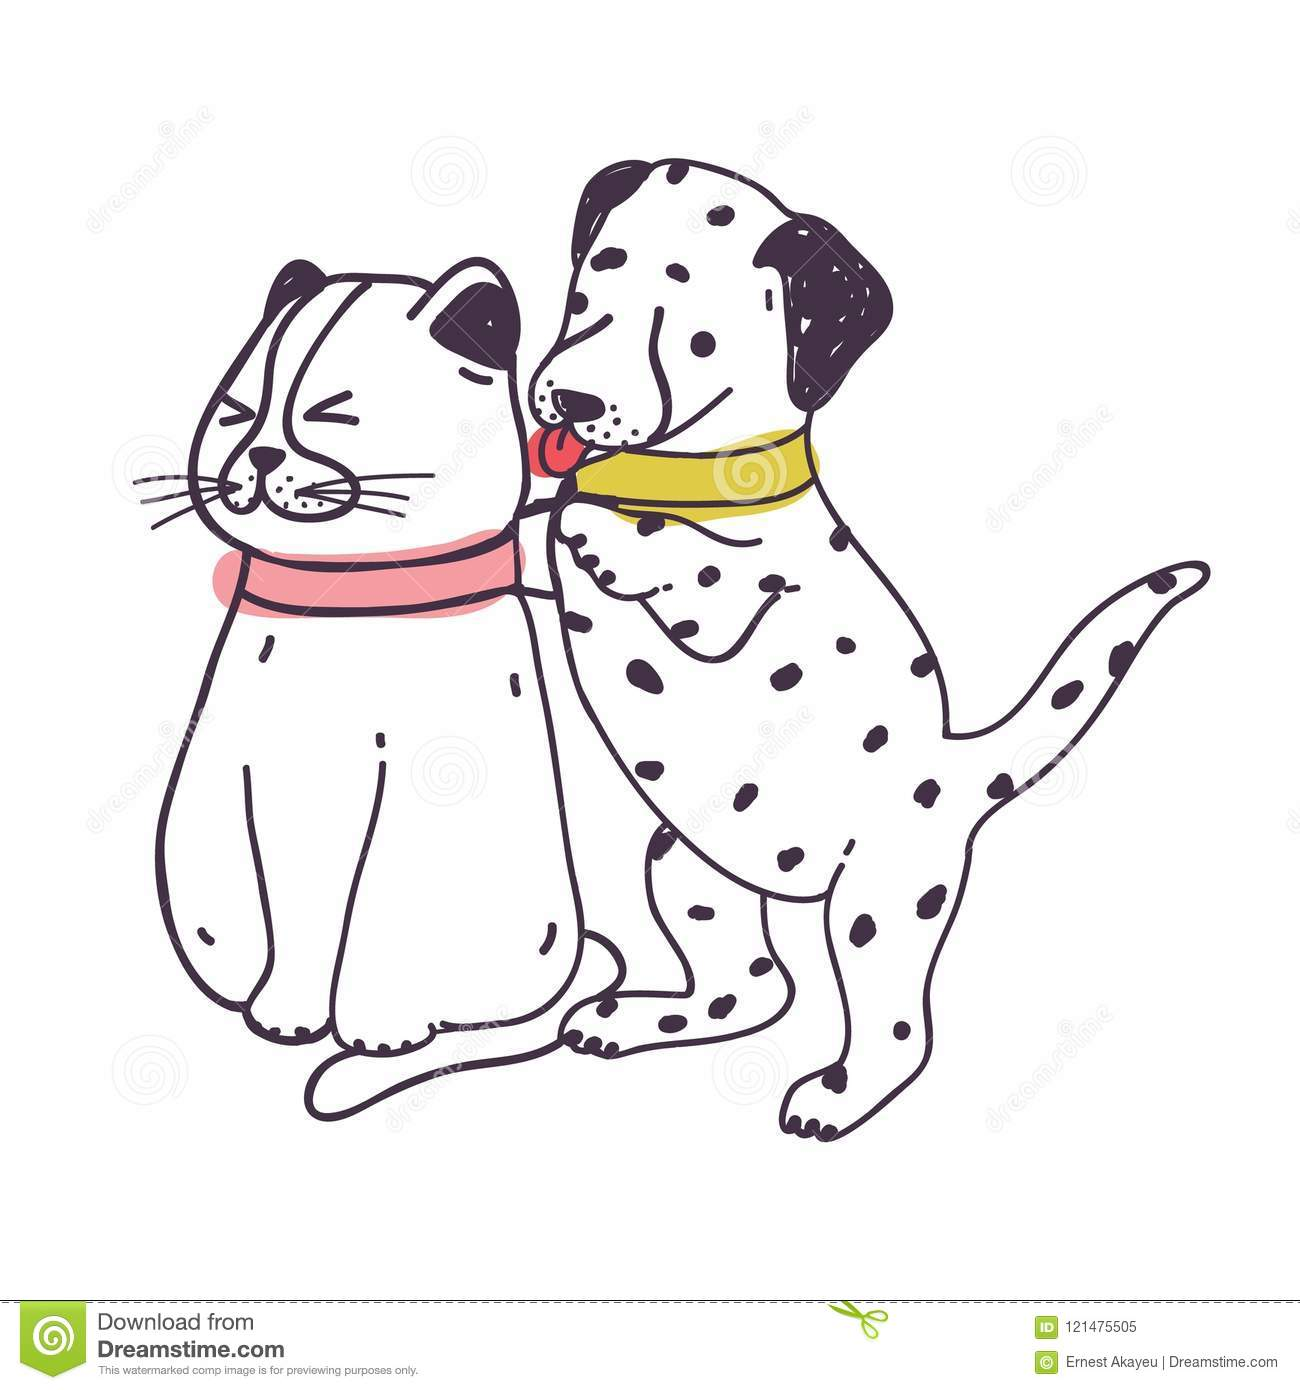 Amusing Dog Annoying Cat Playful Naughty Dalmatian Puppy Irritating And Bothering Kitten Isolated On White Background Stock Vector Illustration Of Amusing Drawing 121475505